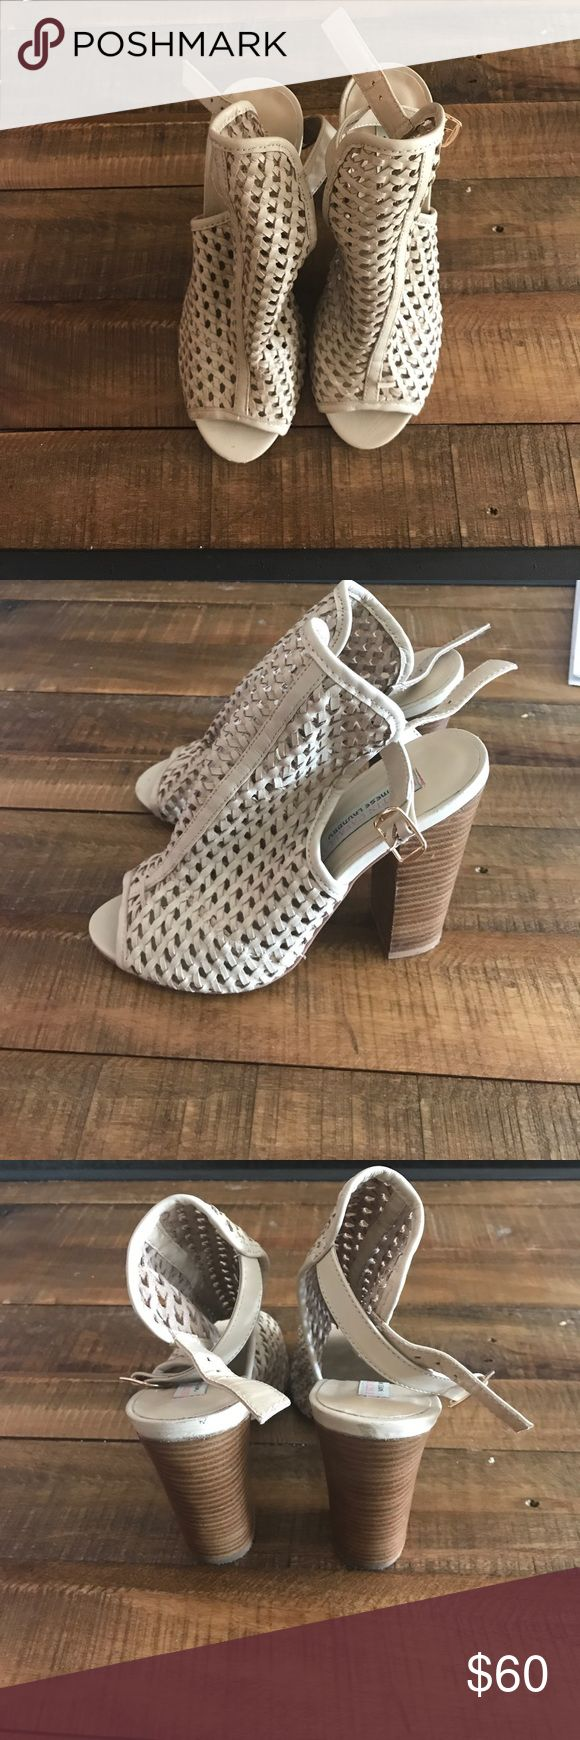 Heel Sandals by Chinese Laundry Kristin Cavallari by Chinese Laundry Block Heels. Gently used. Chinese Laundry Shoes Heels